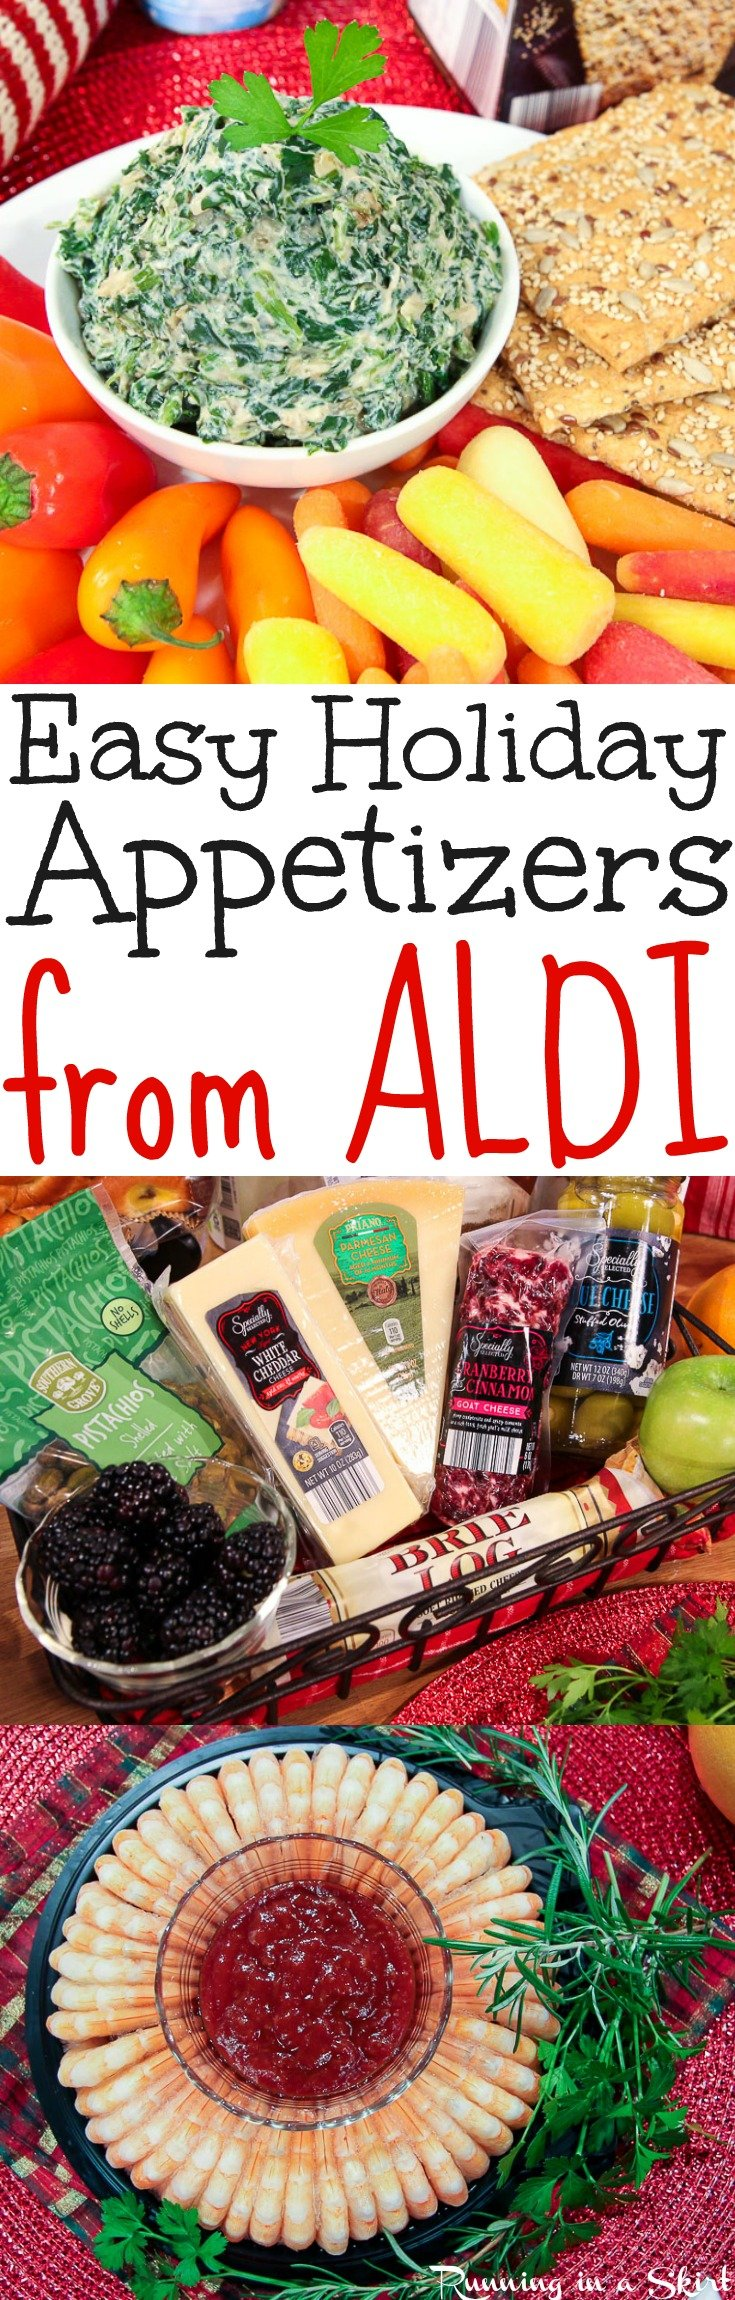 5 Easy Holiday Appetizer Ideas for a party!  Budget friendly, make ahead apps that you can buy at ALDI.  Includes healthy and vegetarian options. / Running in a Skirt #ALDIlove #ad @aldiusa via @juliewunder